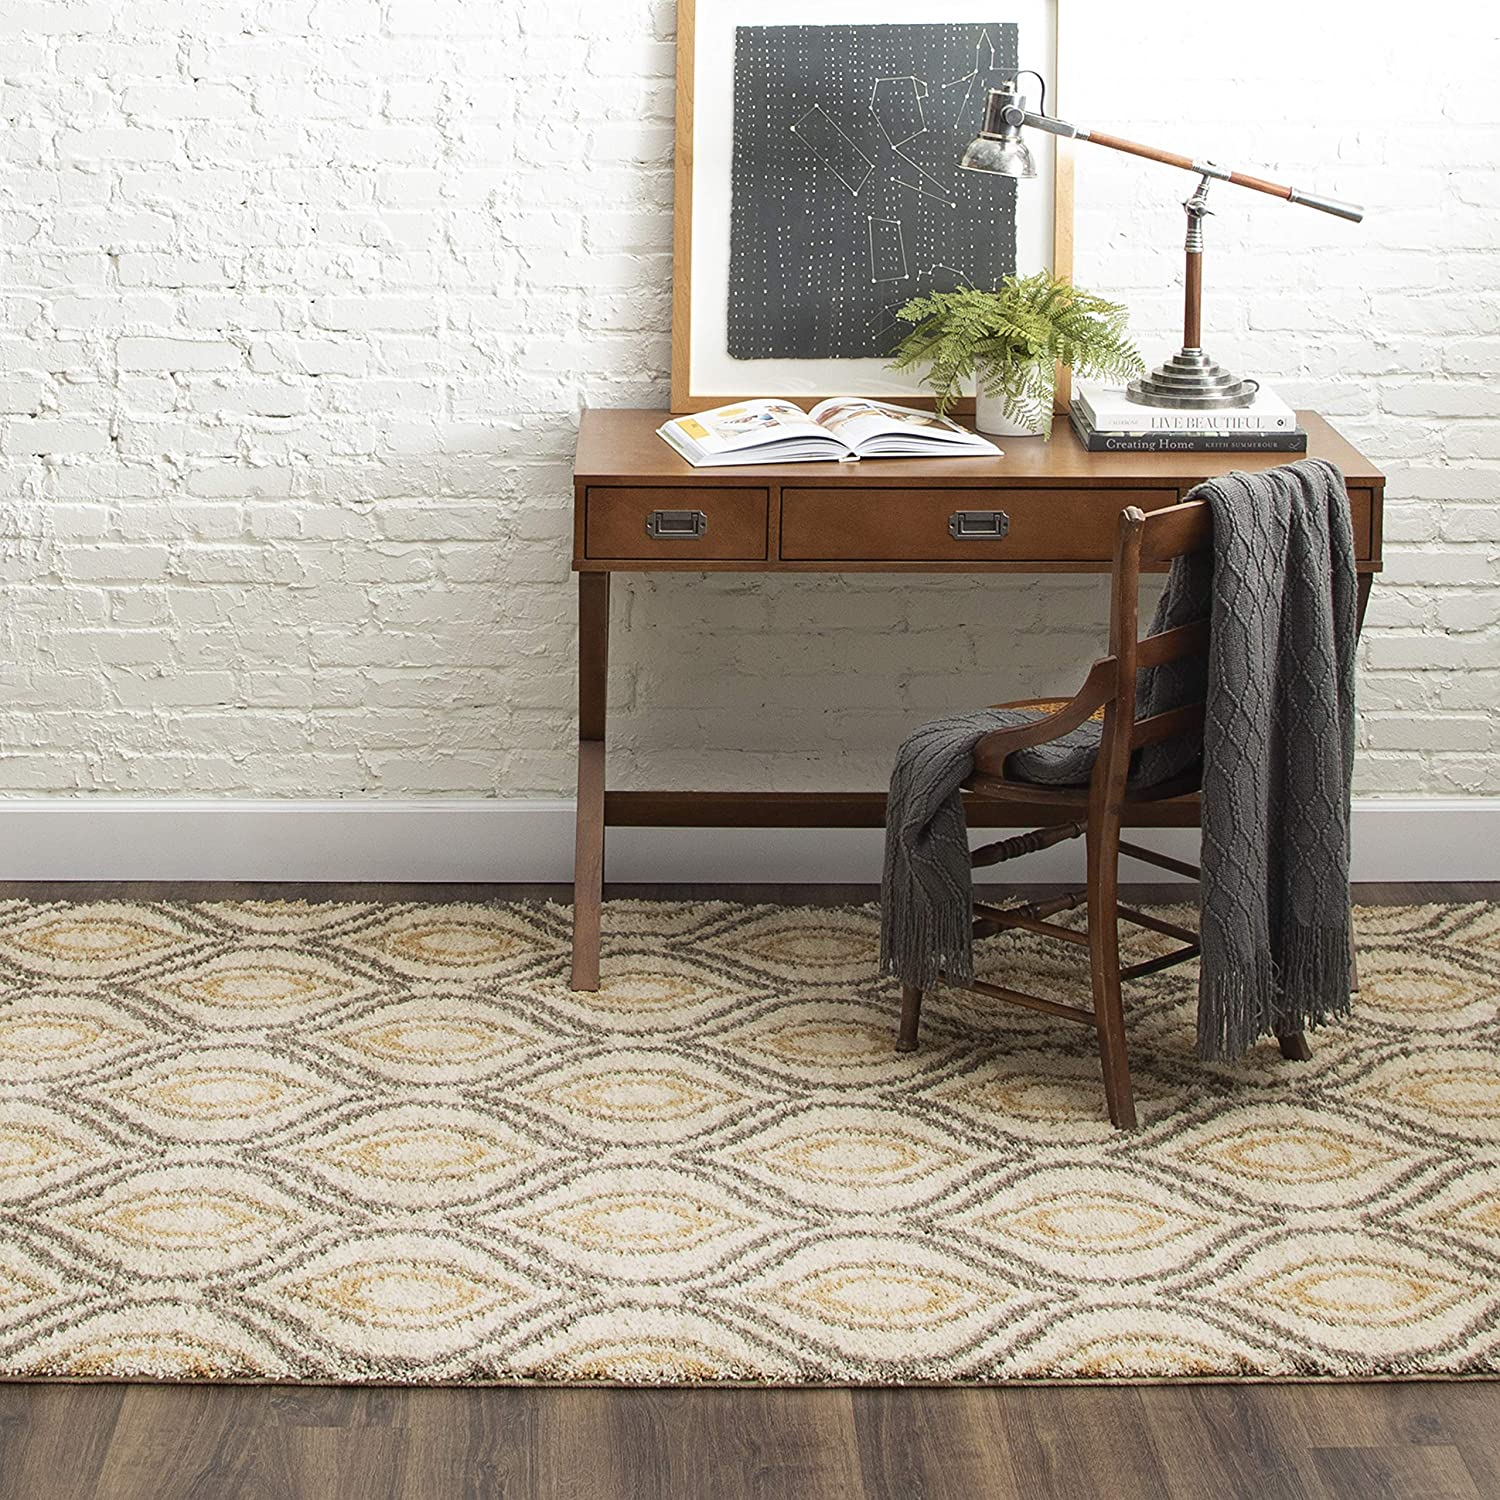 Mohawk Free shipping anywhere in the nation Home Ogee Waters Rug Area 5'x8' 2021new shipping free shipping